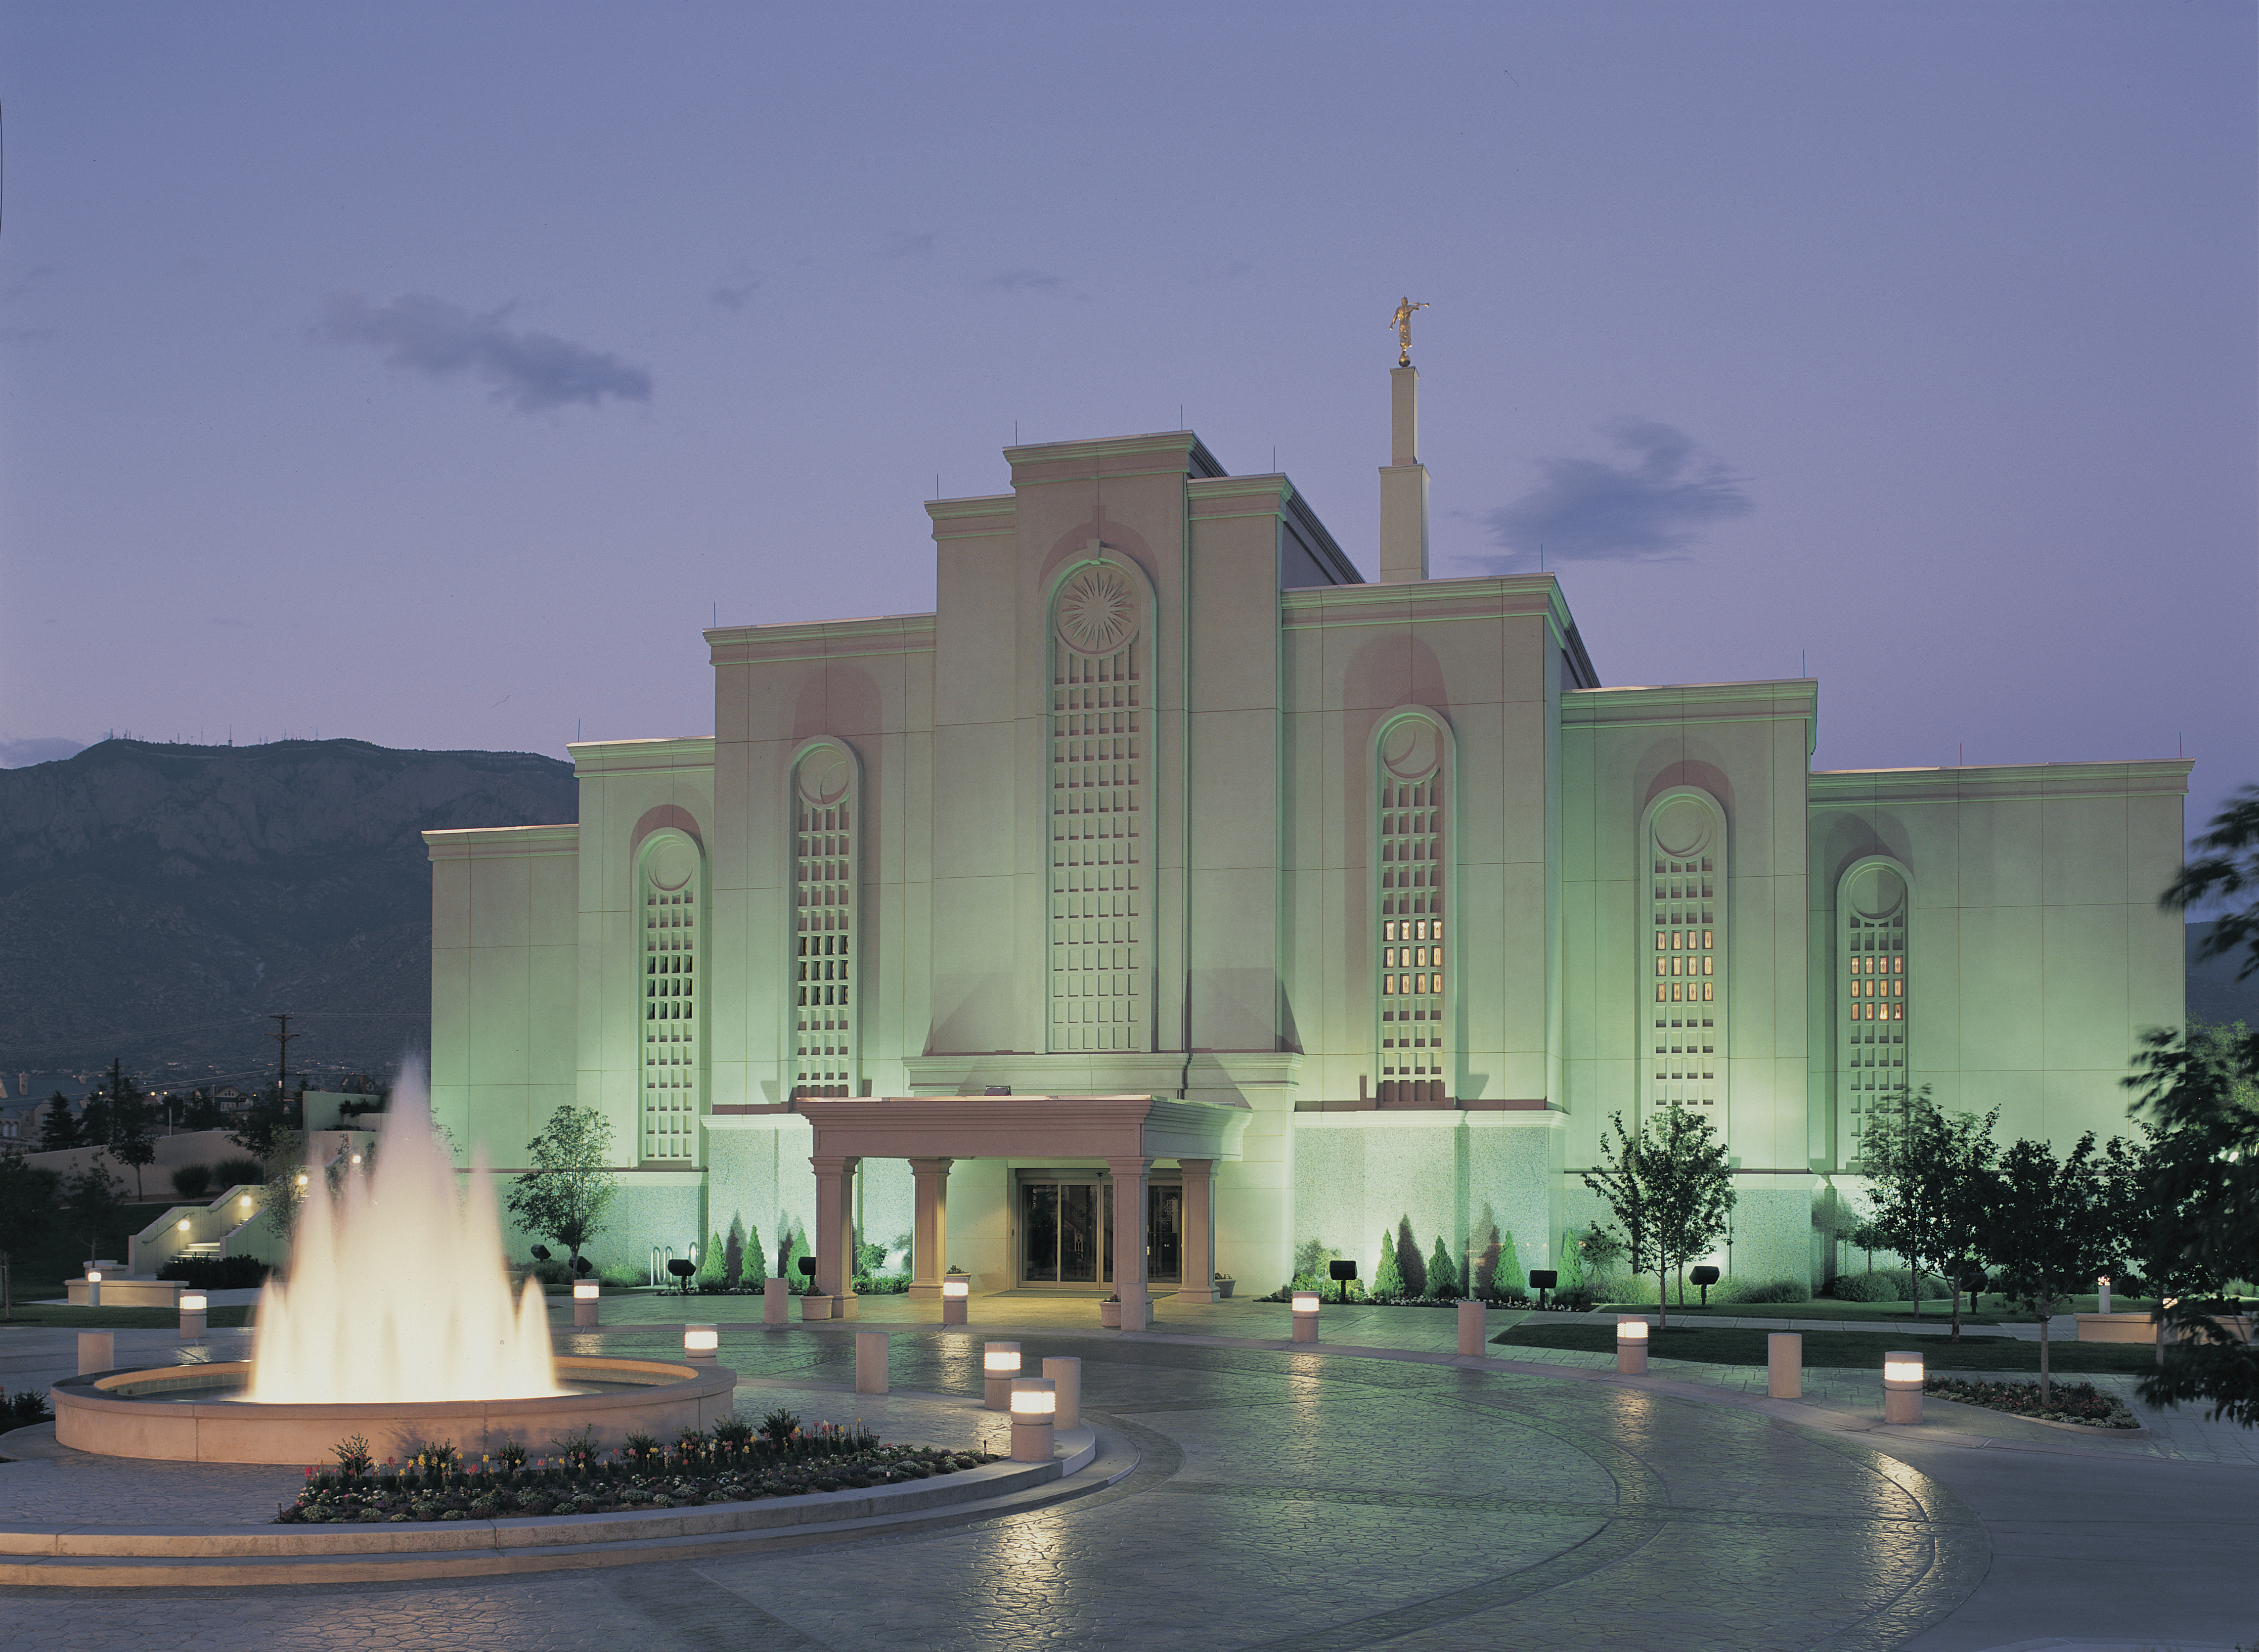 The exterior of the Albuquerque New Mexico Temple and grounds are lit up at night.